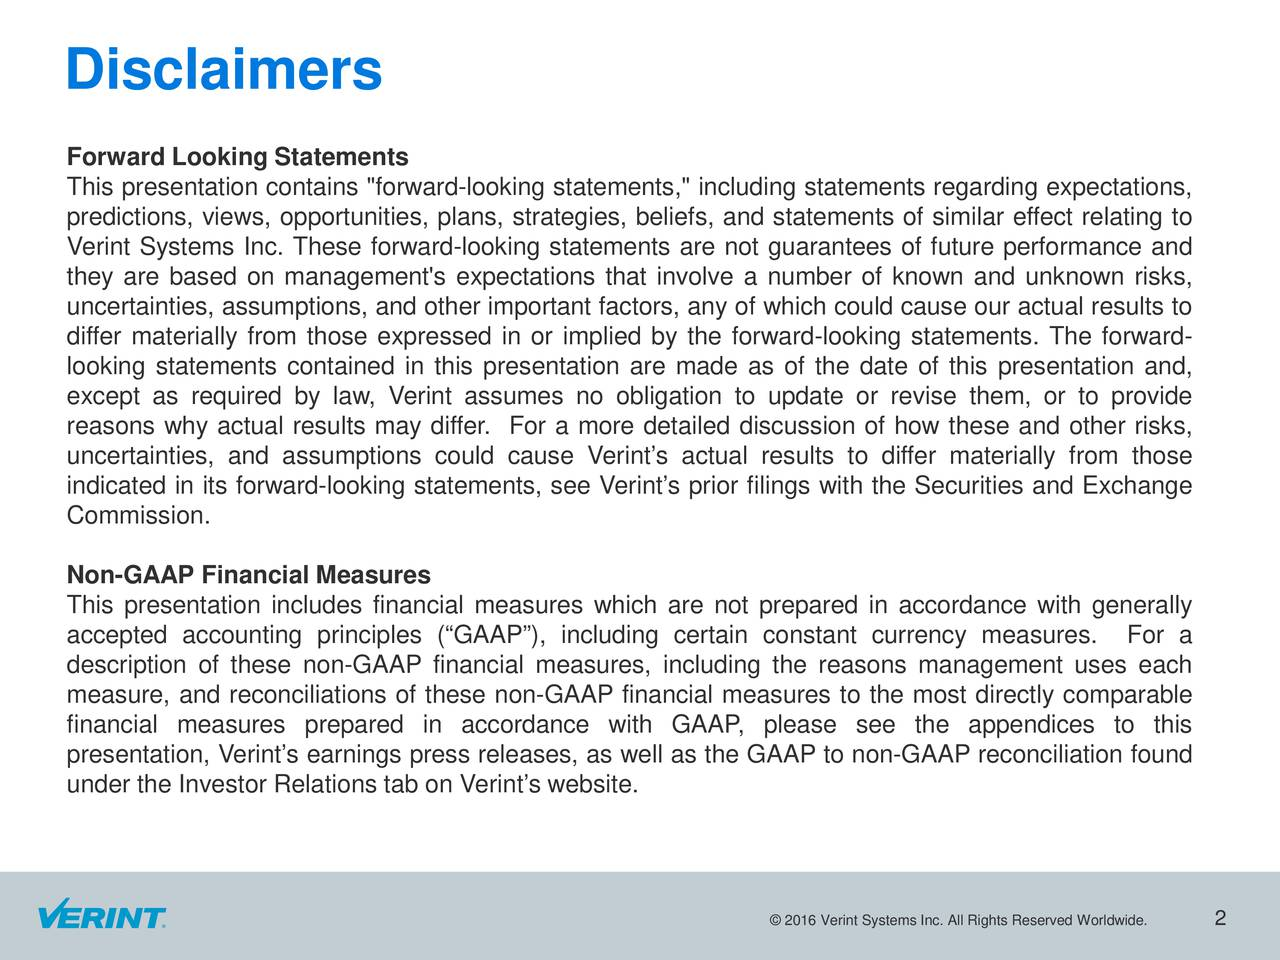 """Forward Looking Statements This presentation contains """"forward-looking statements,"""" including statements regarding expectations, predictions, views, opportunities, plans, strategies, beliefs, and statements of similar effect relating to Verint Systems Inc. These forward-looking statements are not guarantees of future performance and they are based on management's expectations that involve a number of known and unknown risks, uncertainties,assumptions, and other important factors, any of which could cause our actual results to differ materially from those expressed in or implied by the forward-looking statements. The forward- looking statements contained in this presentation are made as of the date of this presentation and, except as required by law, Verint assumes no obligation to update or revise them, or to provide reasons why actual results may differ. For a more detailed discussion of how these and other risks, uncertainties, and assumptions could cause Verints actual results to differ materially from those indicated in its forward-looking statements, see Verints prior filings with the Securities and Exchange Commission. Non-GAAP Financial Measures This presentation includes financial measures which are not prepared in accordance with generally accepted accounting principles (GAAP), including certain constant currency measures. For a description of these non-GAAP financial measures, including the reasons management uses each measure, and reconciliations of these non-GAAP financial measures to the most directly comparable financial measures prepared in accordance with GAAP, please see the appendices to this presentation, Verints earnings press releases, as well as the GAAP to non-GAAP reconciliation found under the Investor Relations tab on Verints website. 2016 Verint Systems Inc. All Rights Reserved Worldwide."""